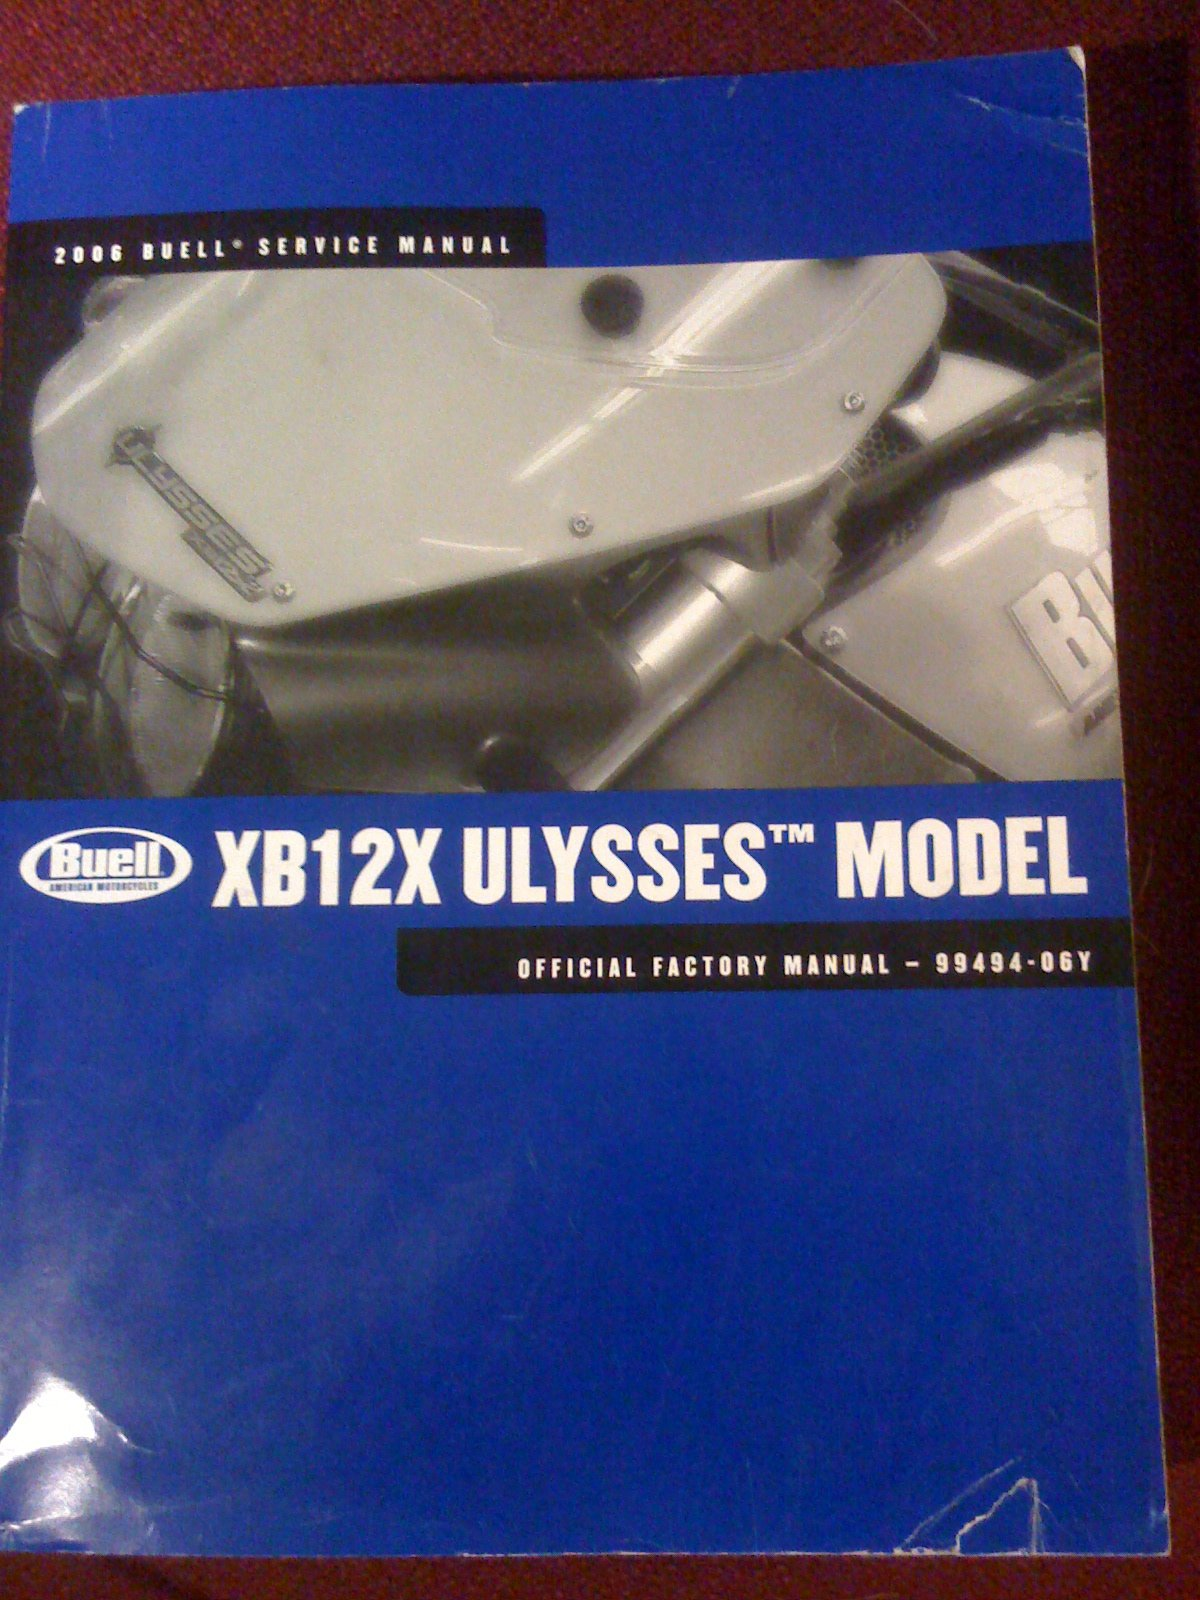 2006 xb12x buell ulysses model service manual official factory rh amazon com Buell Ulysses Forum Buell Ulysses Lower Seat